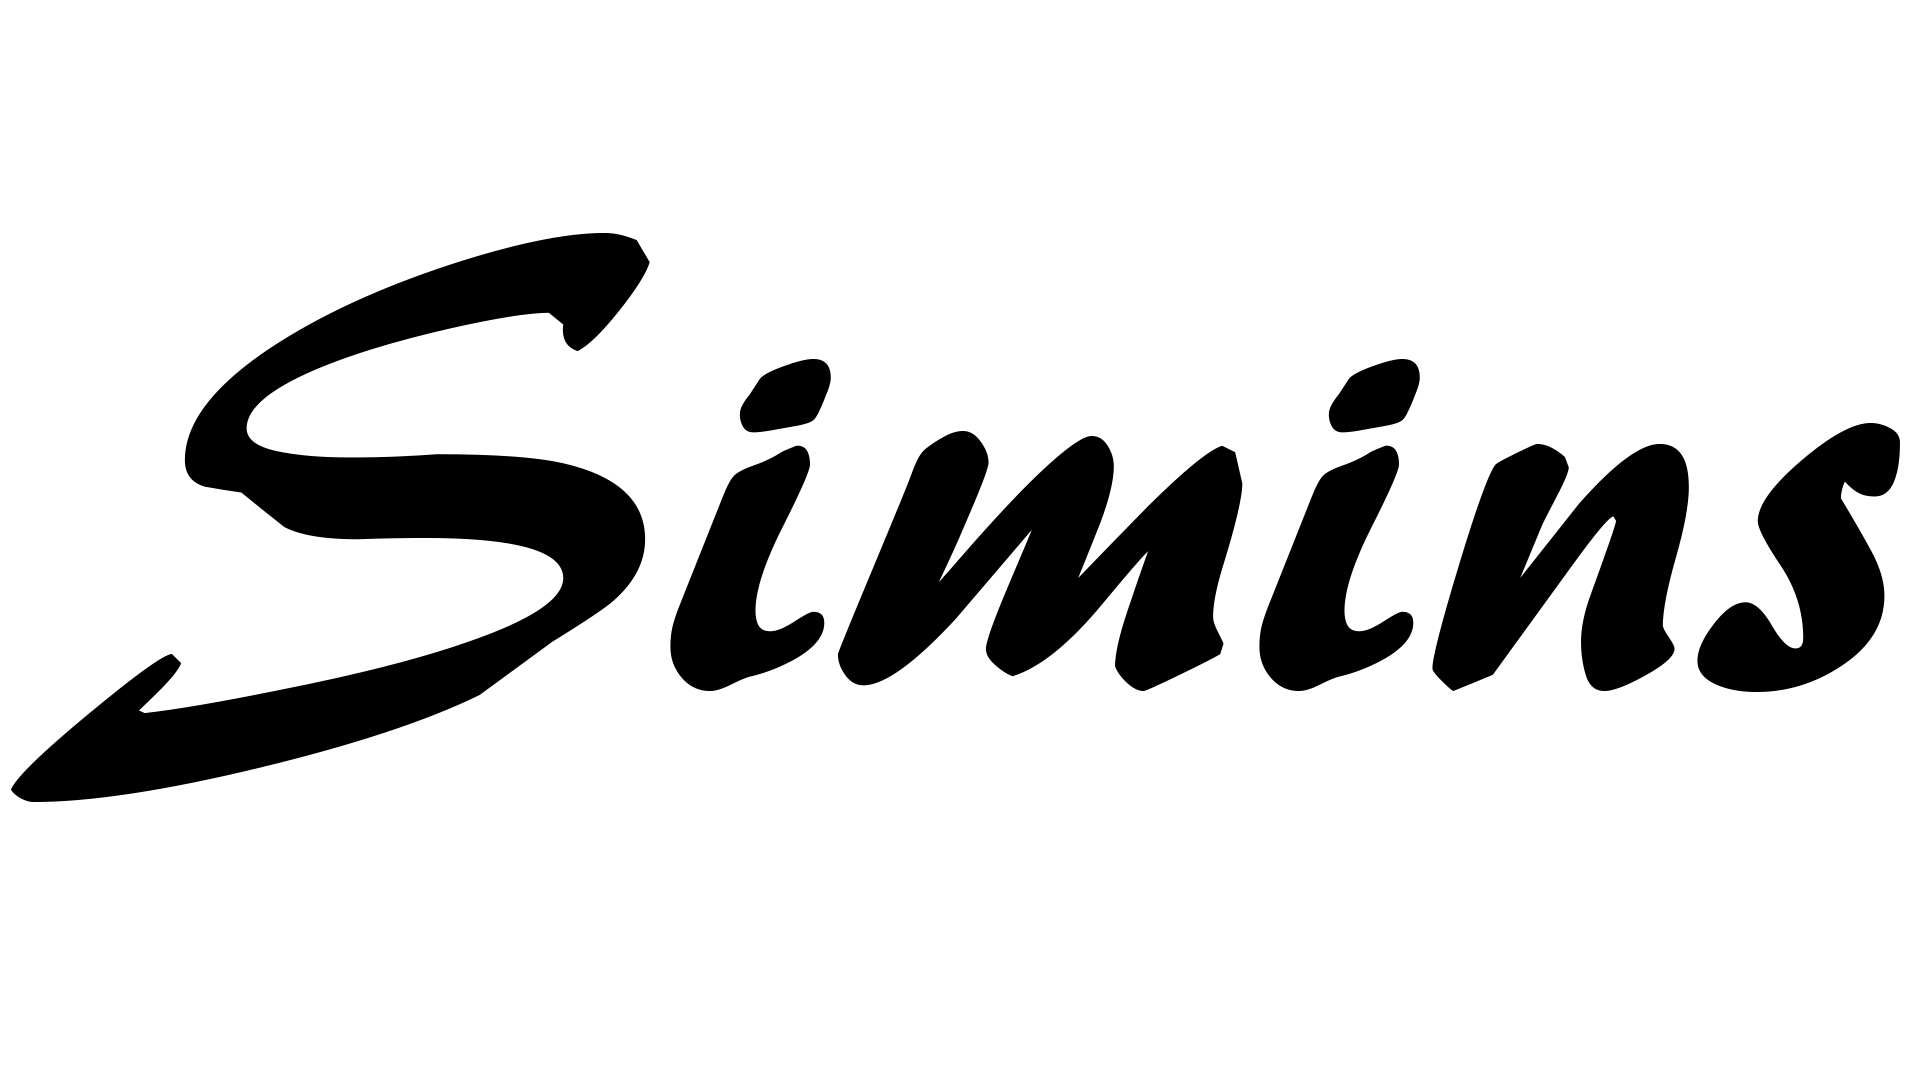 Simins-Catering - Bistro und Catering